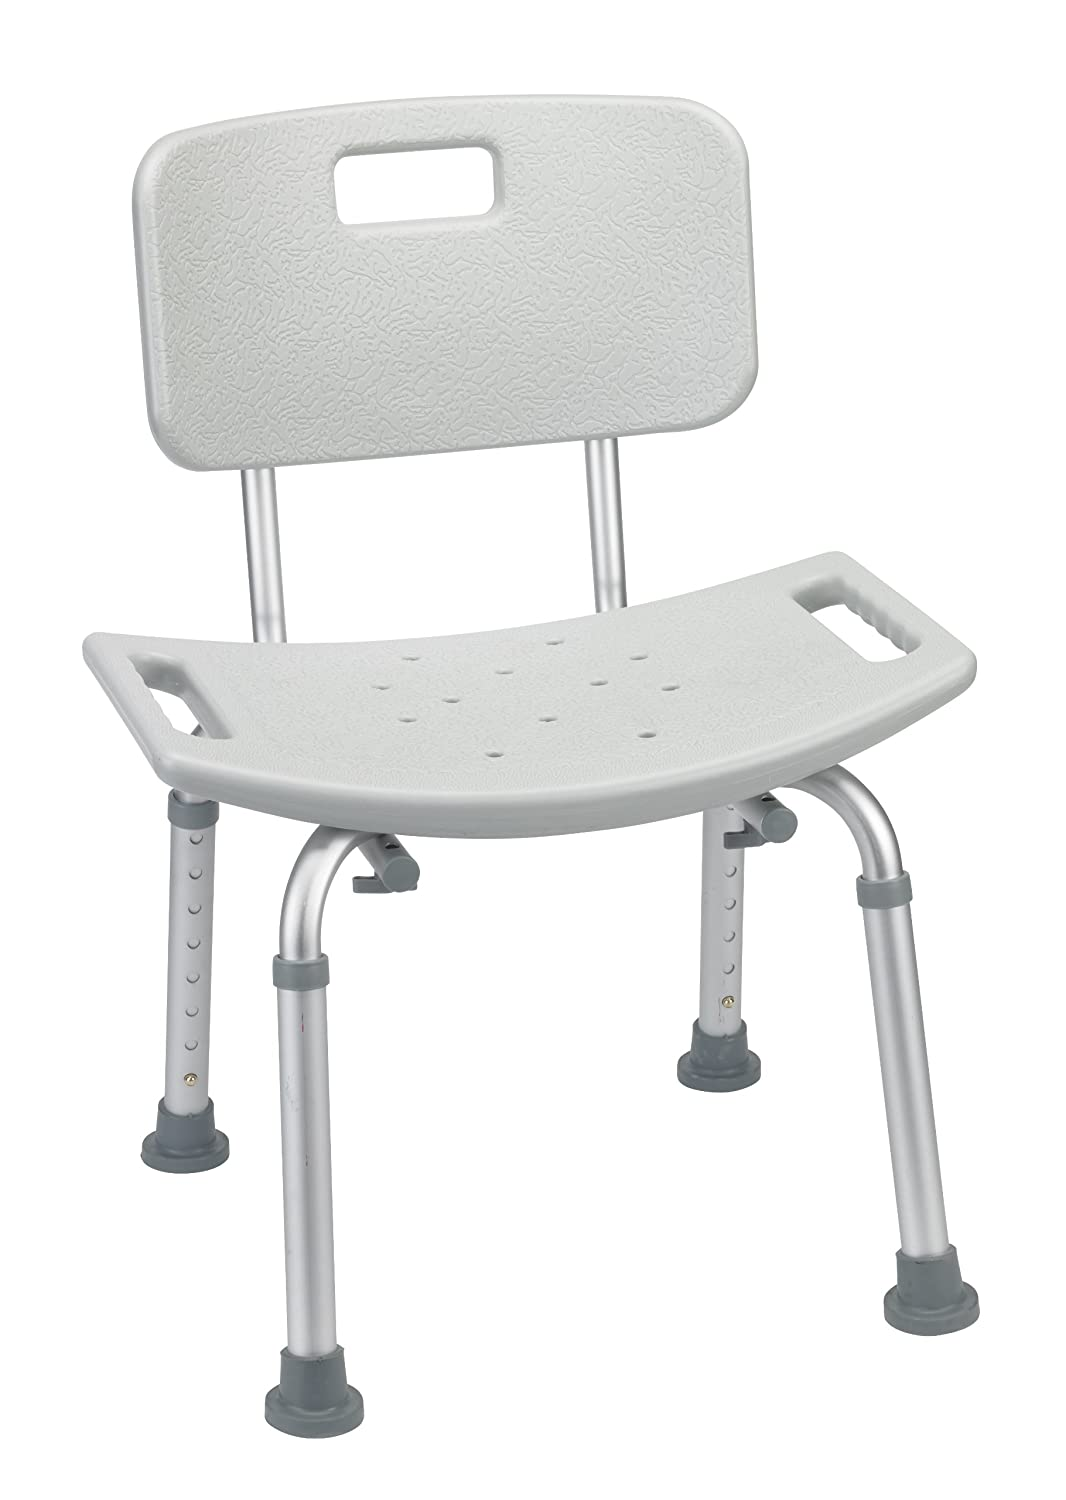 essential cheaply ea aids uk altantic online commode buy large chair at shower atlantic